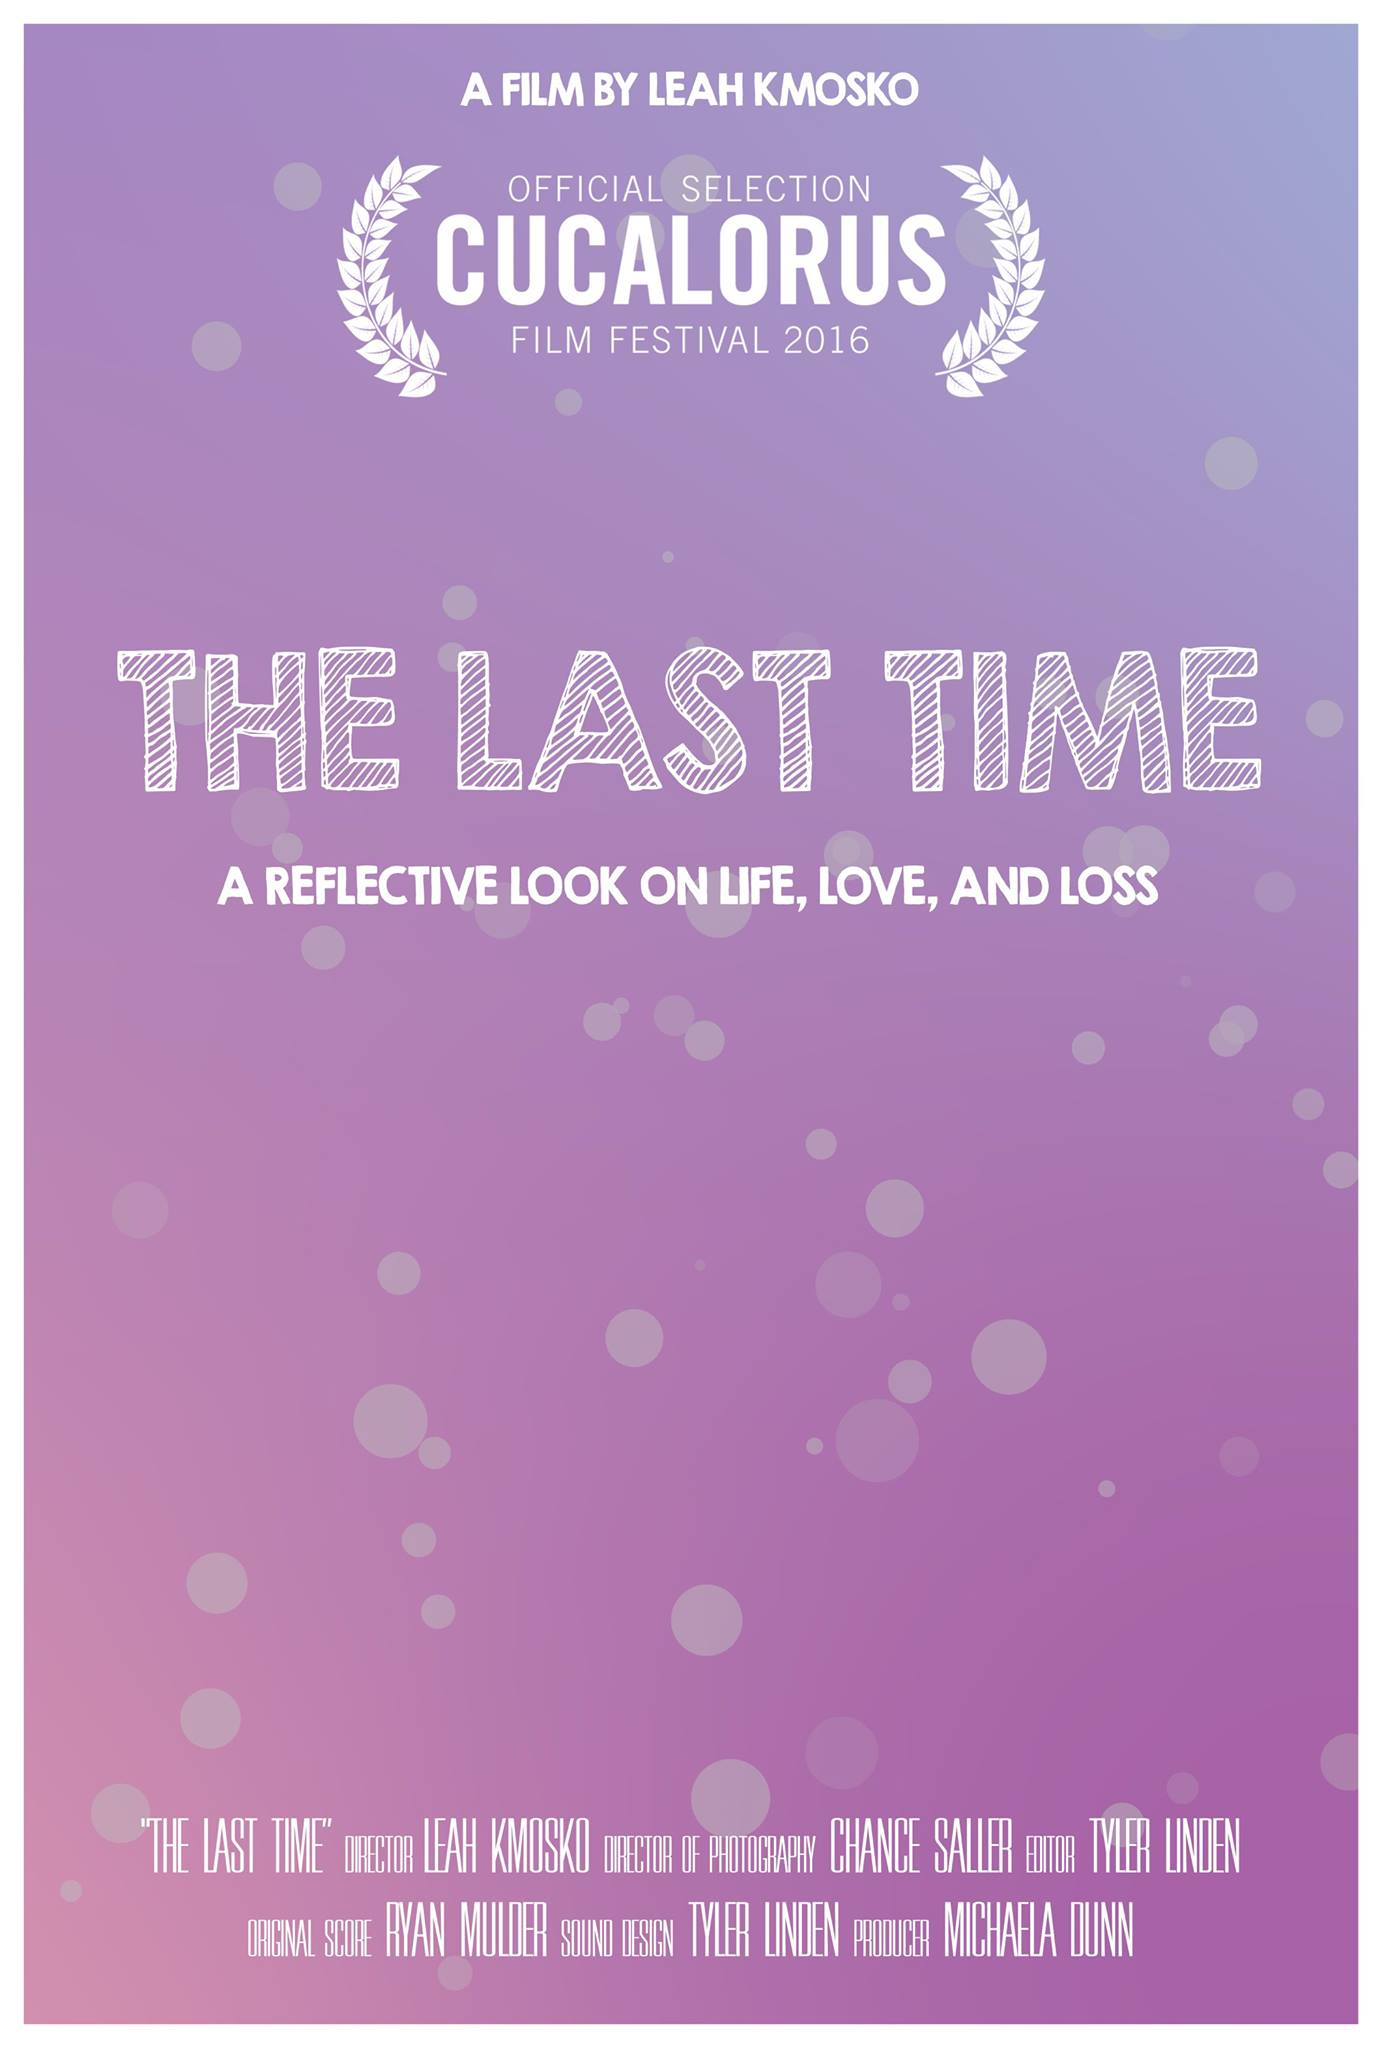 The last time - A Short Documentary FilmWritten and Directed by Leah Rae Kmosko